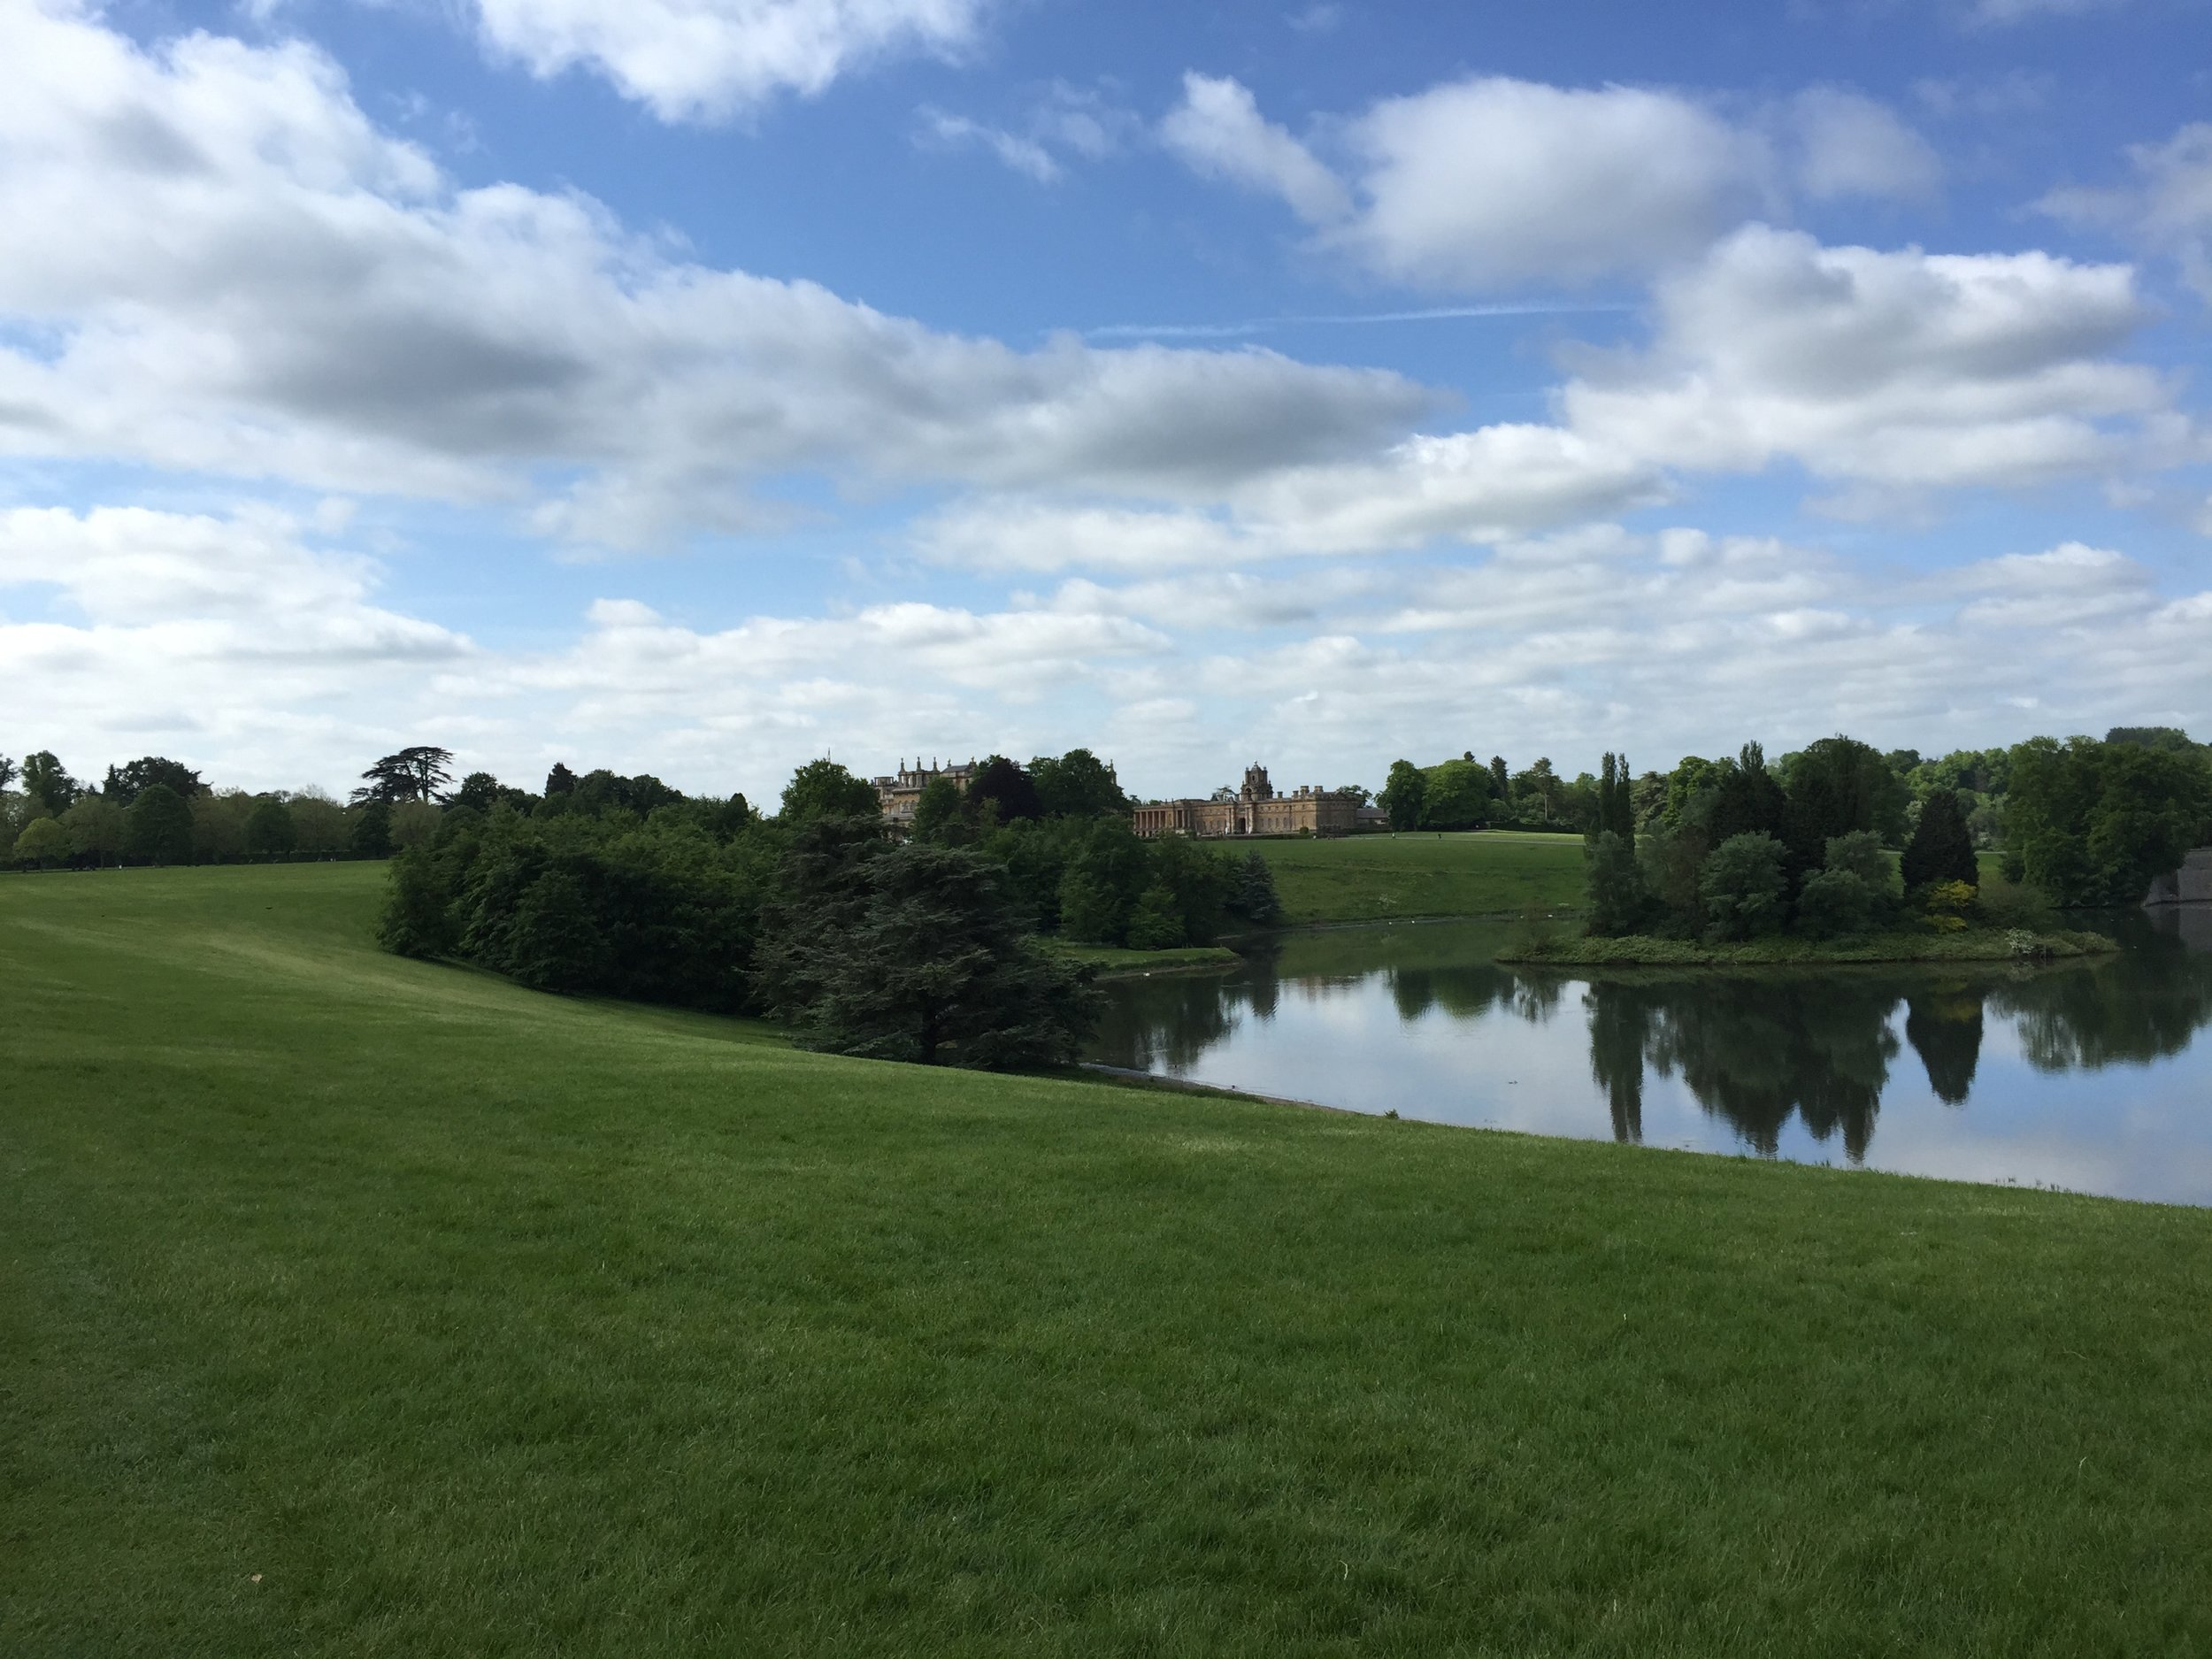 Blenheim Palace 2015. We spent one day there, exploring the grounds and the house. A very special and fun trip taken with my husband and two sons.